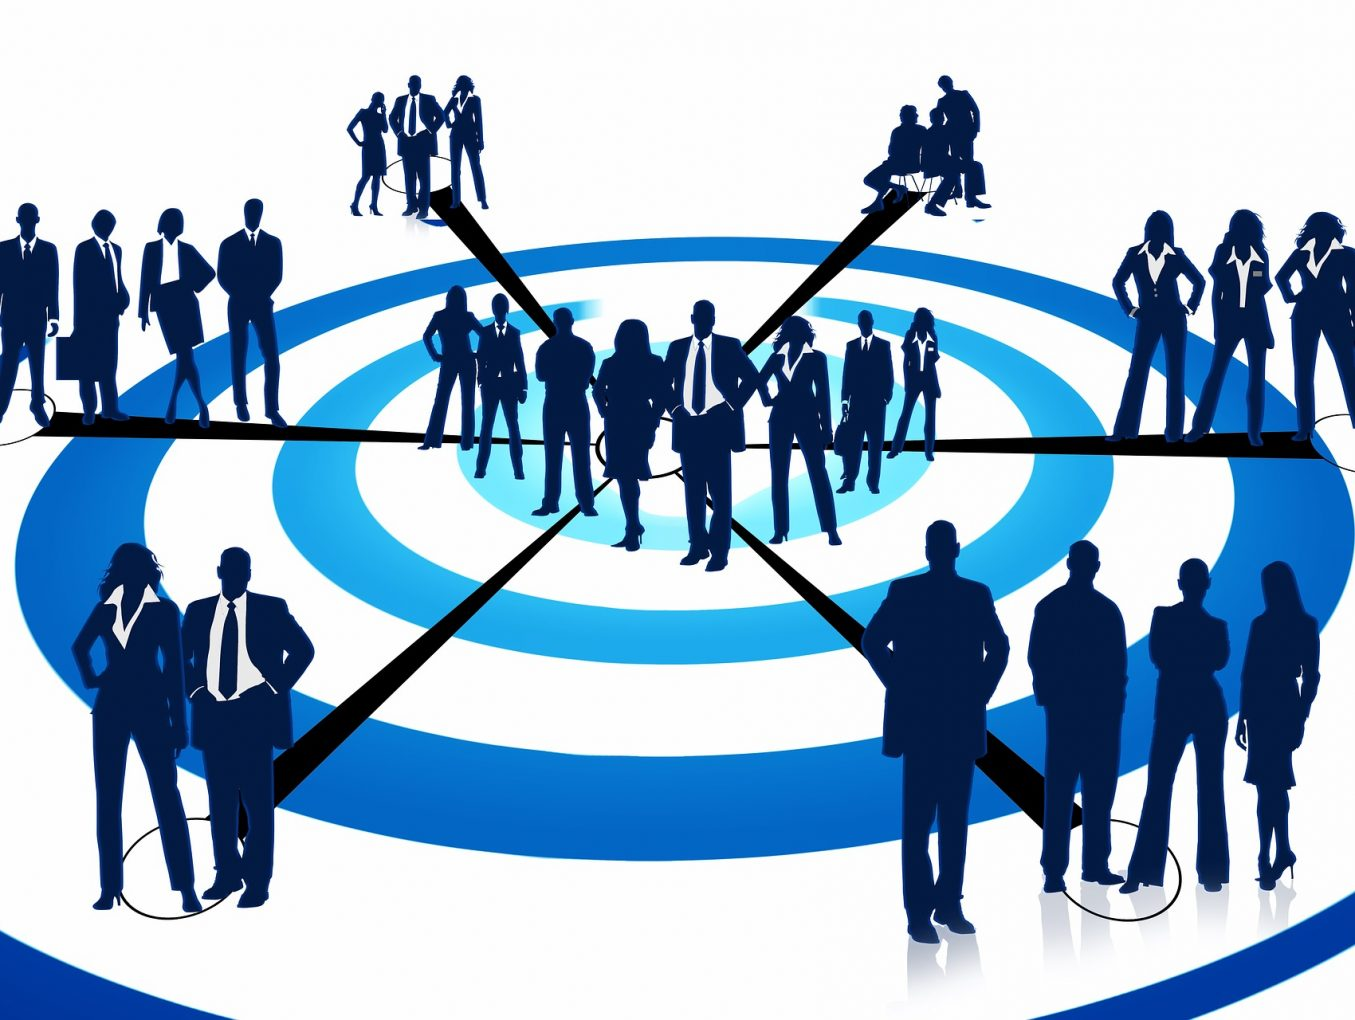 Why do we need managers?